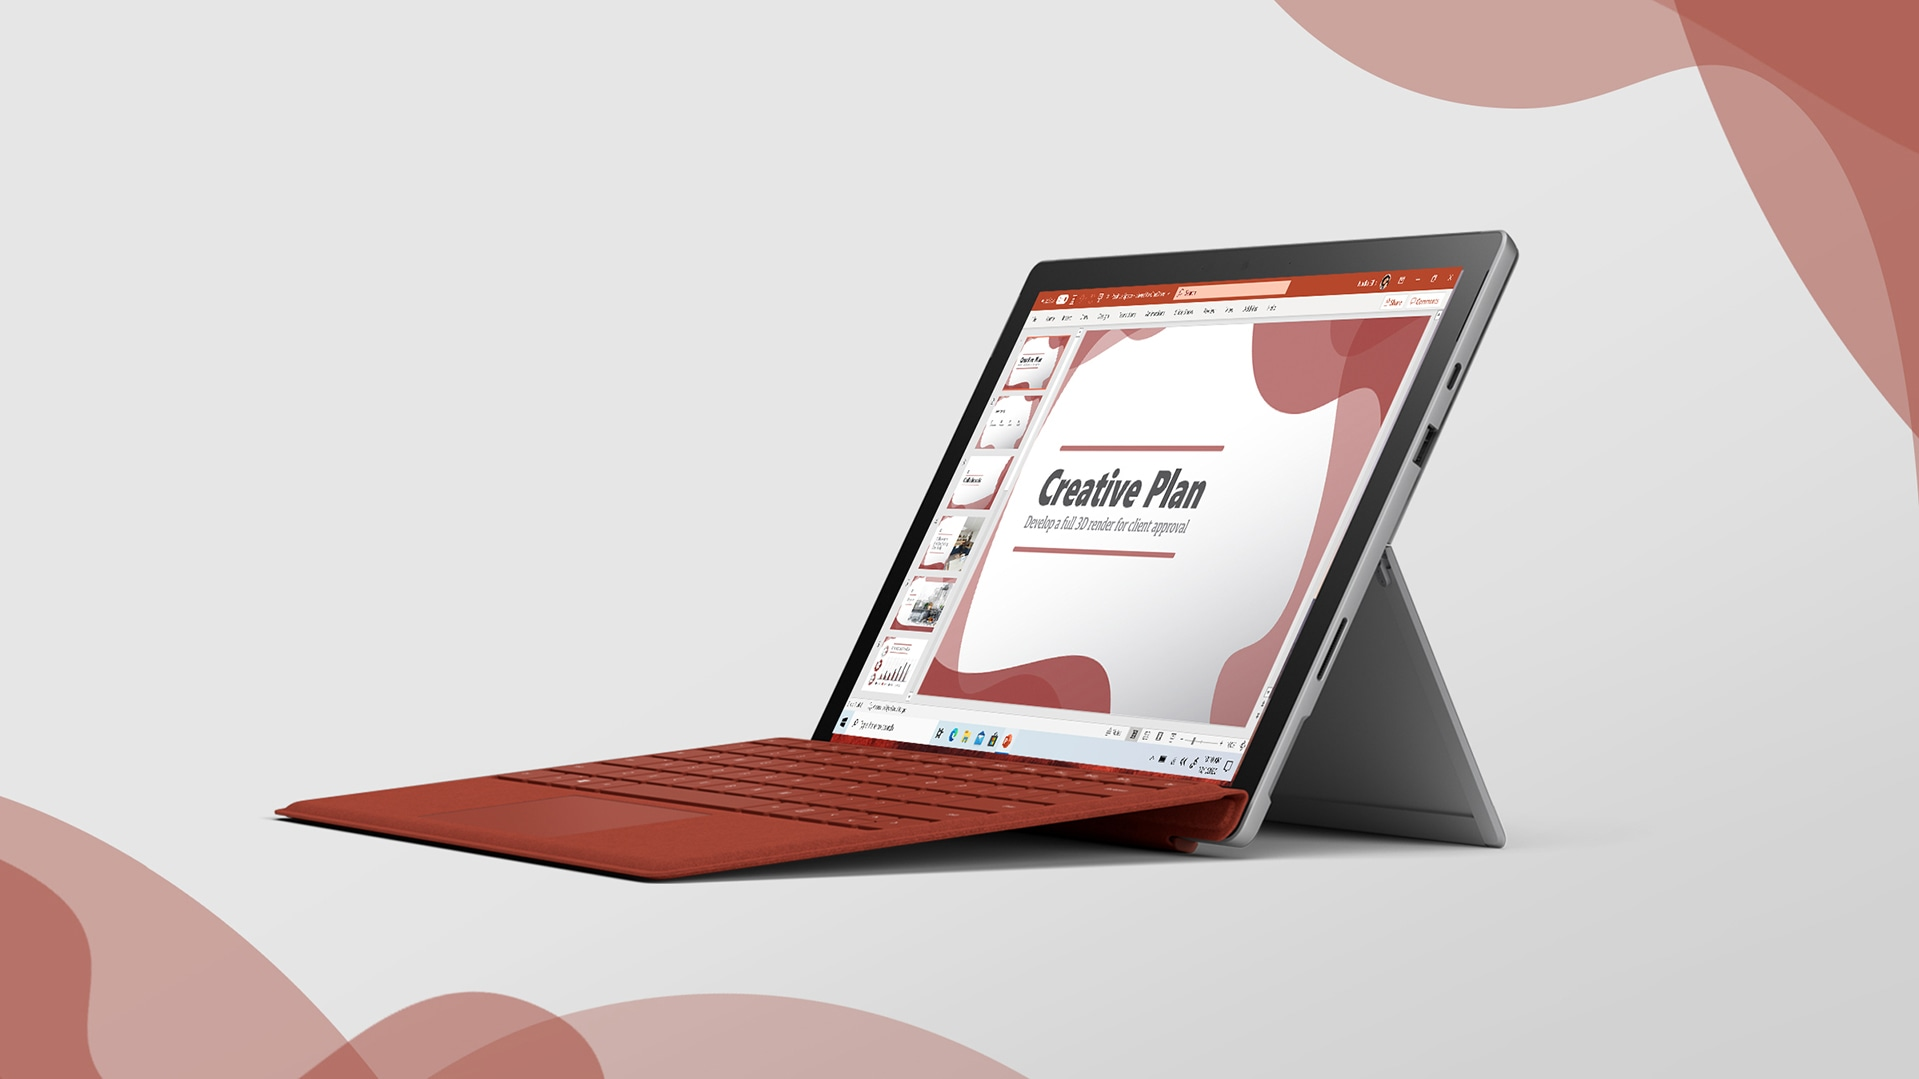 Surface Pro 7 with poppy red type cover and a Powerpoint document is on screen.